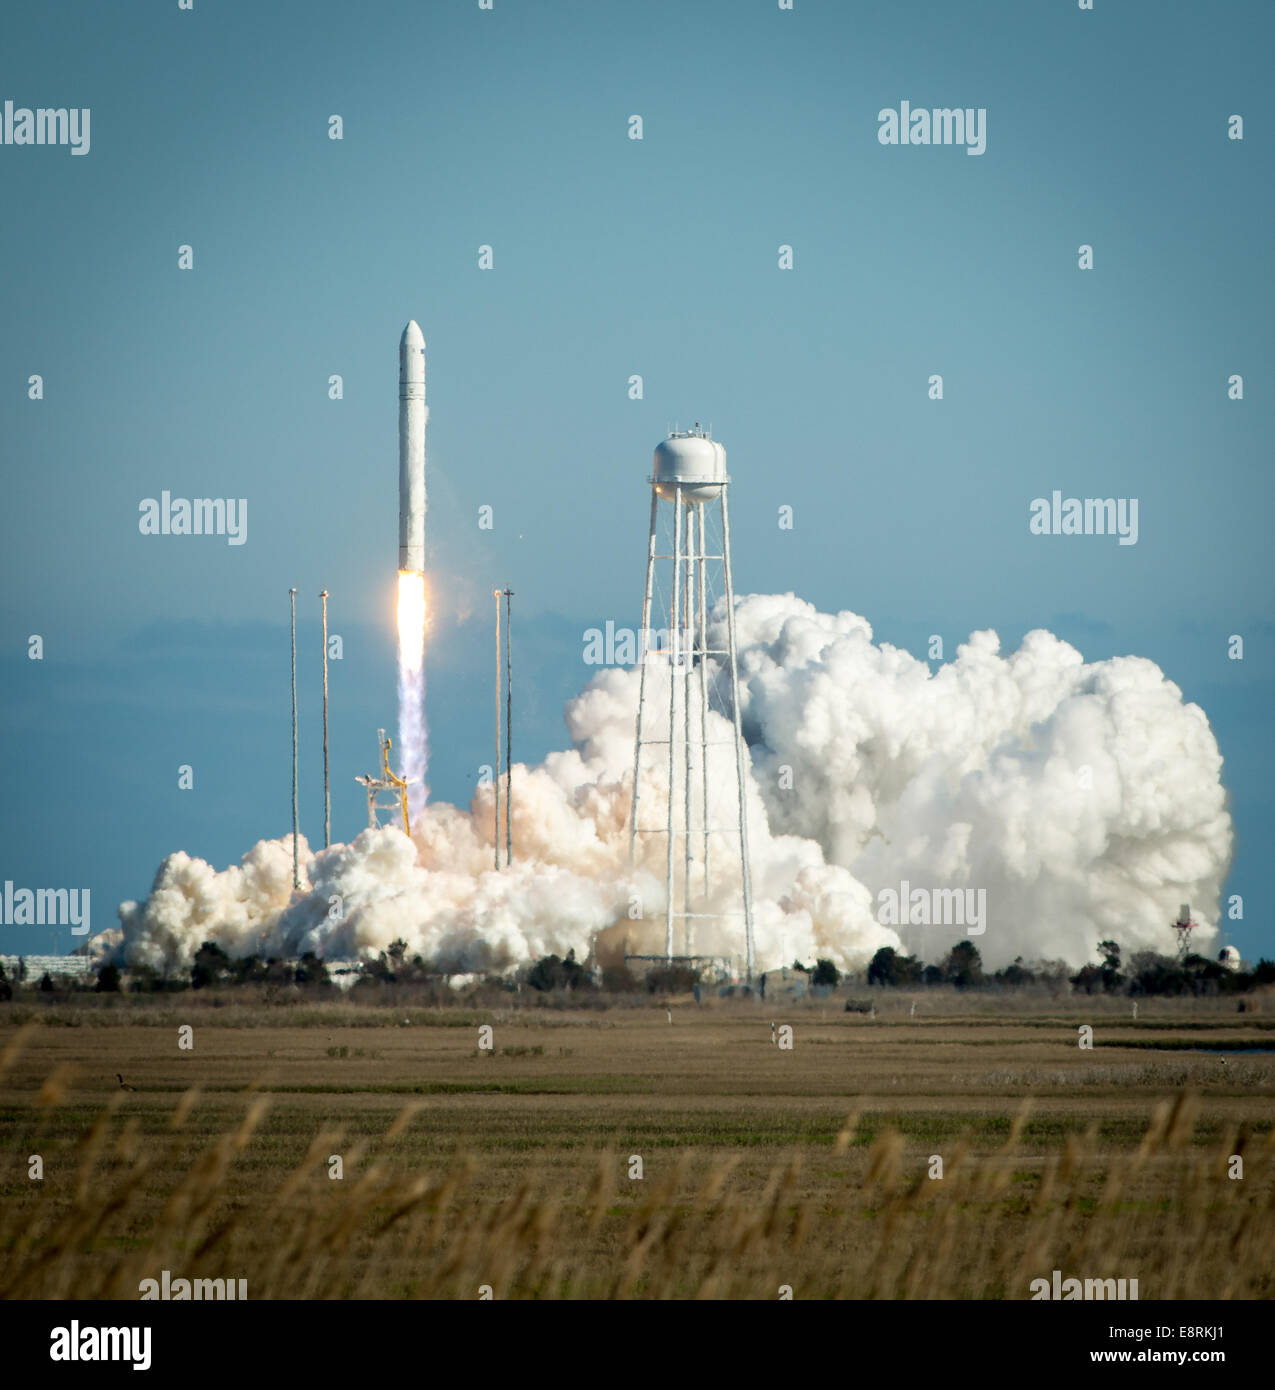 The Orbital Sciences Corporation Antares rocket is seen as it launches from Pad-0A of the Mid-Atlantic Regional - Stock Image